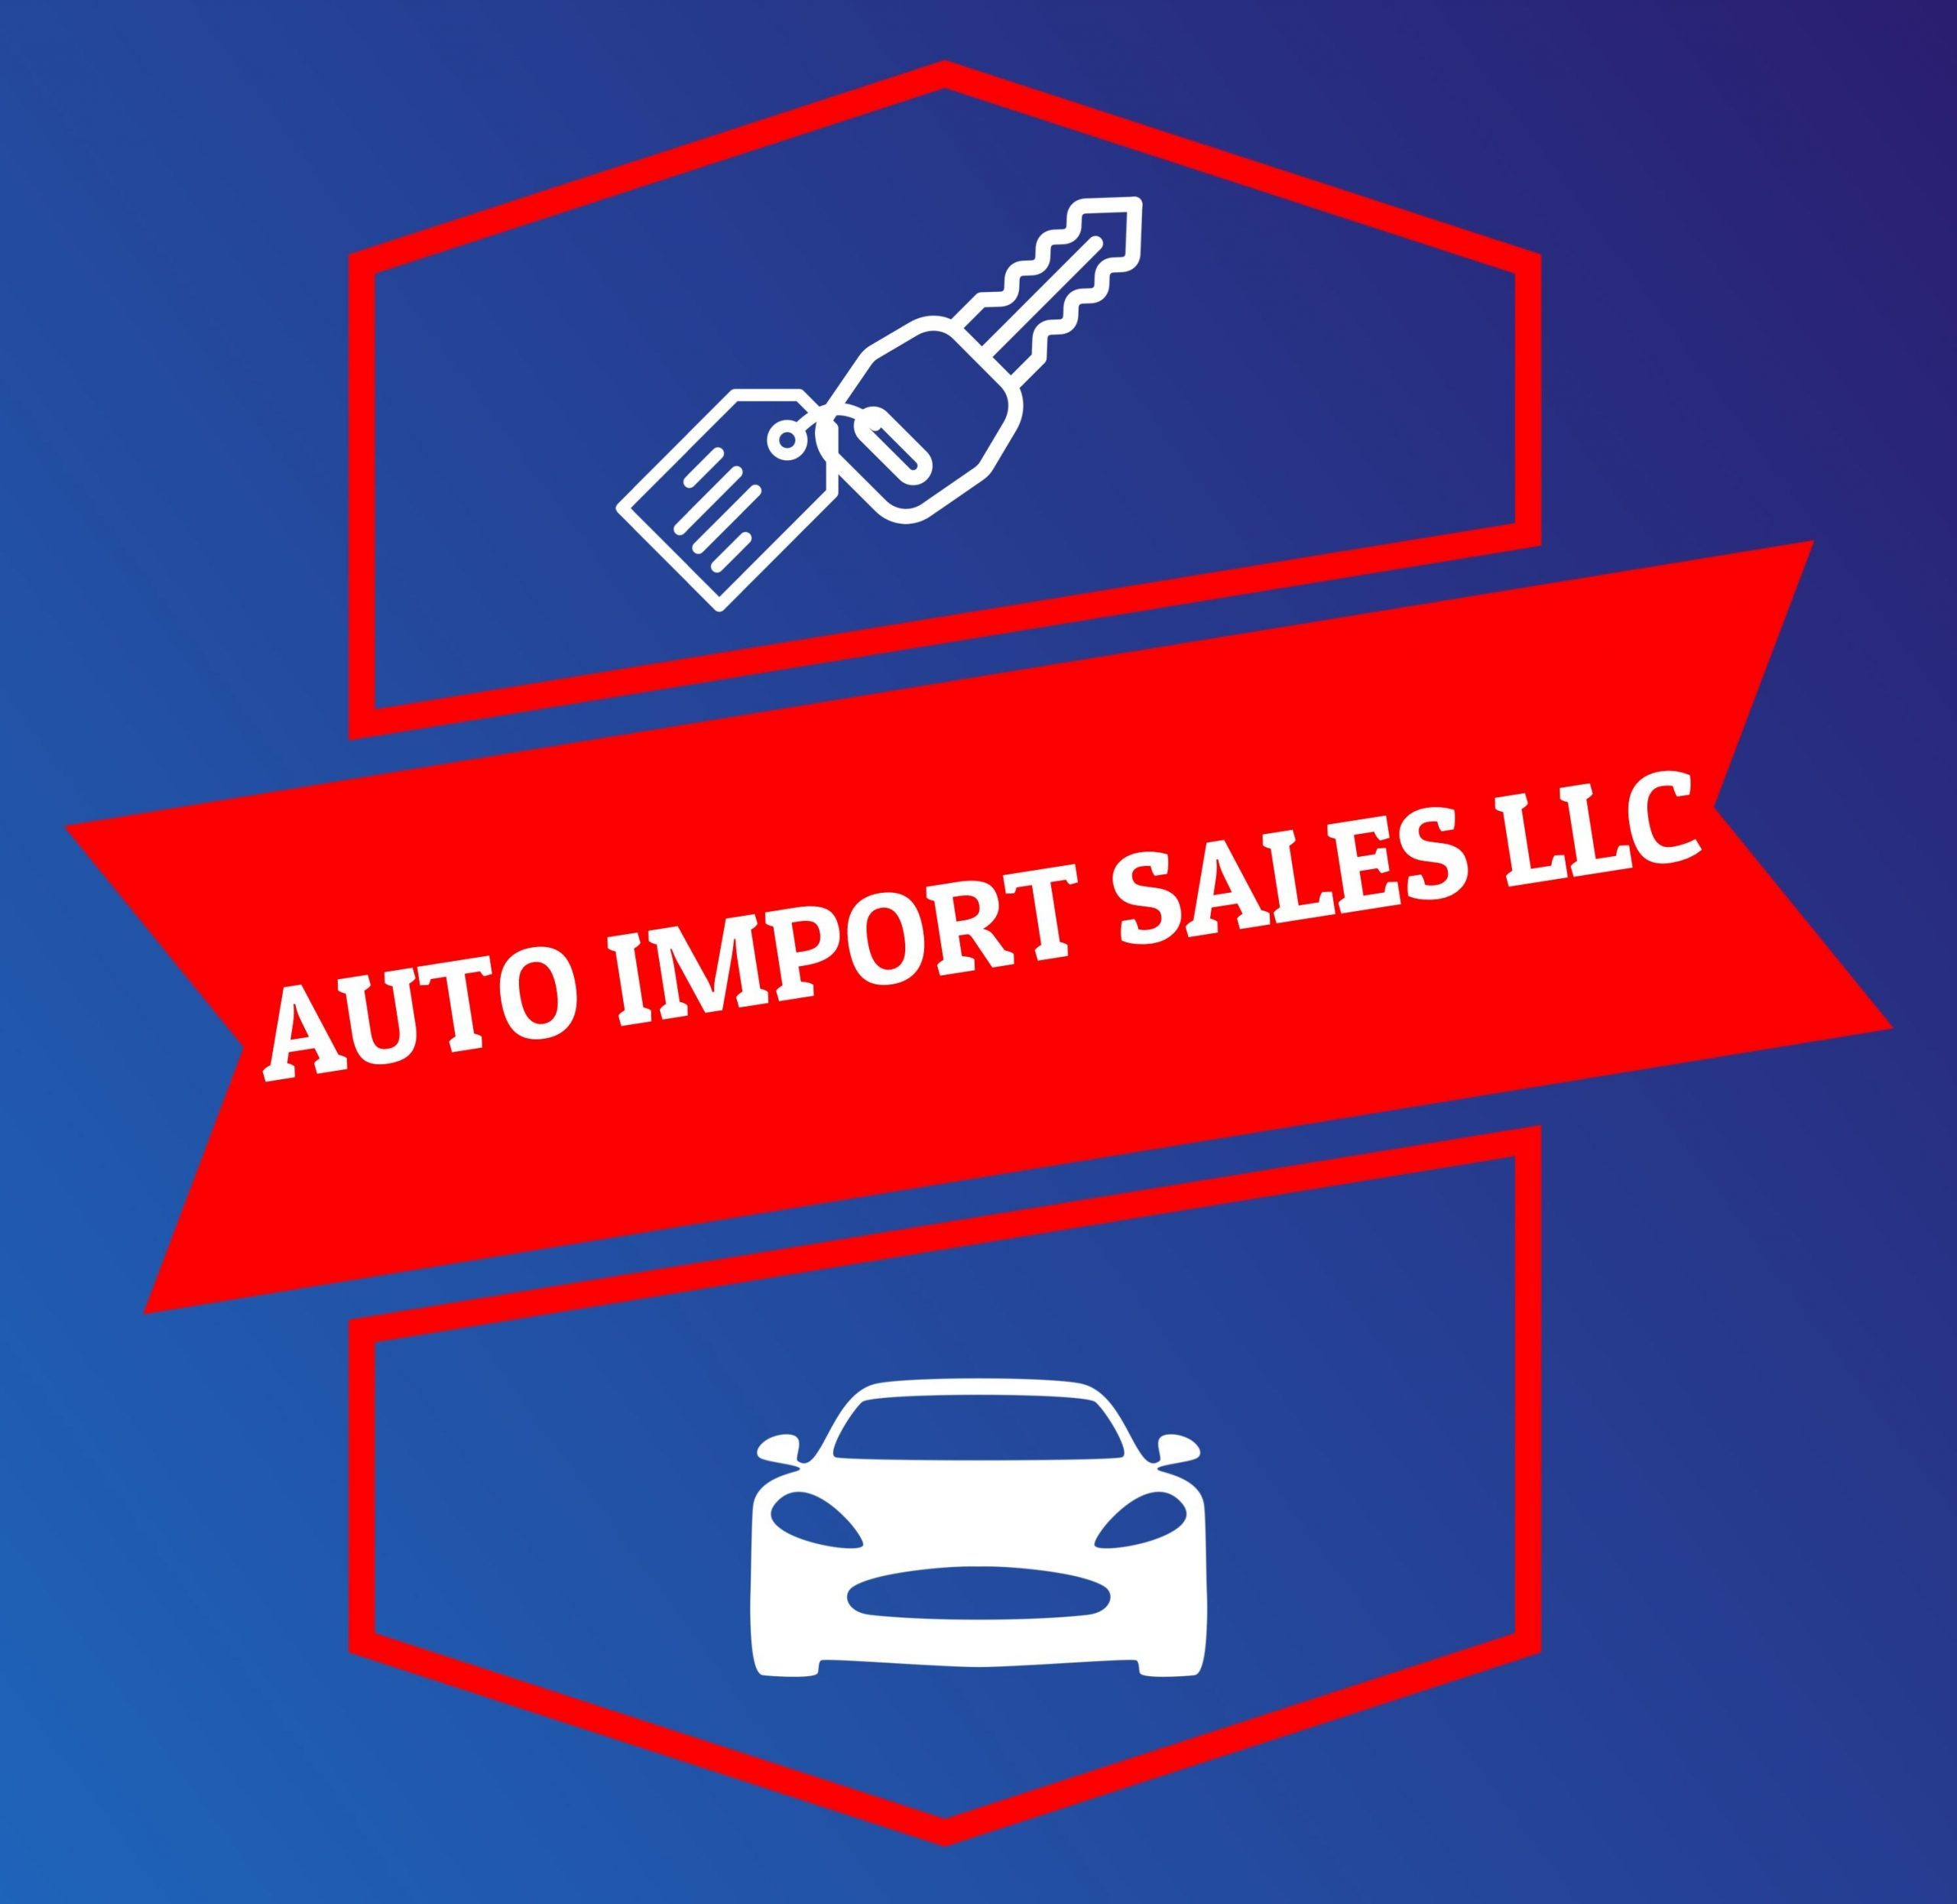 Auto Import Sales LLC